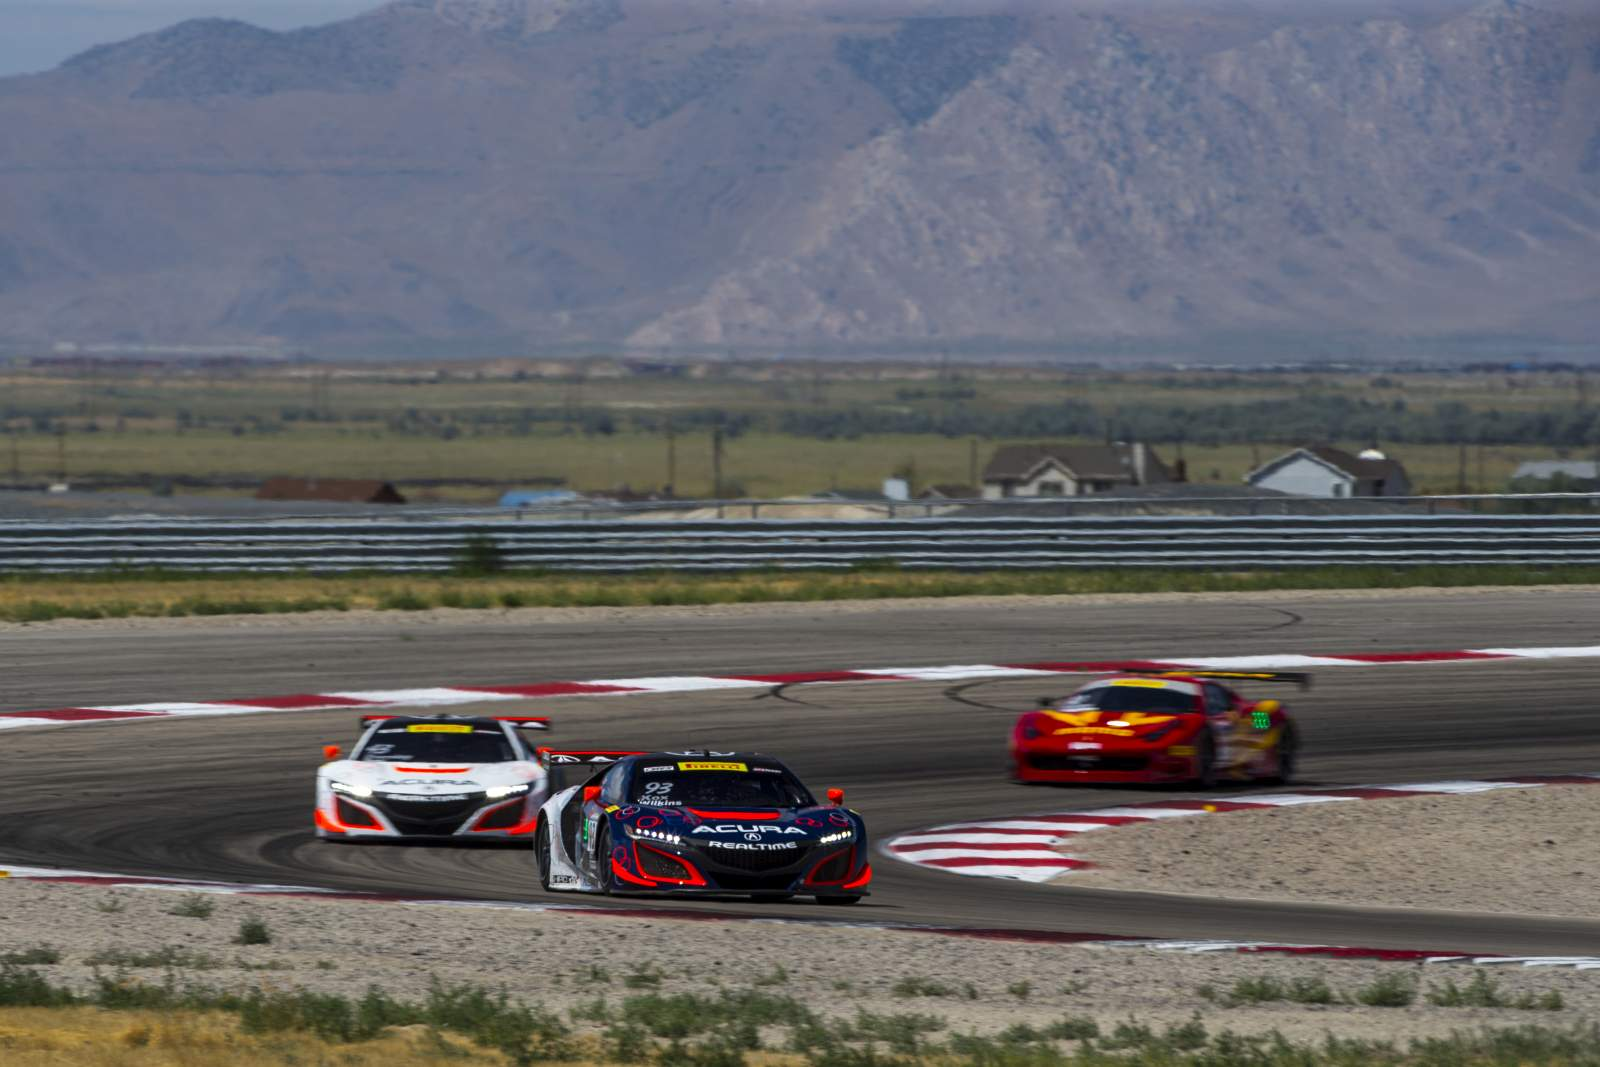 peter-kox-realtime-racing-pirelli-world-challenge-utah-motorsport-campus--075